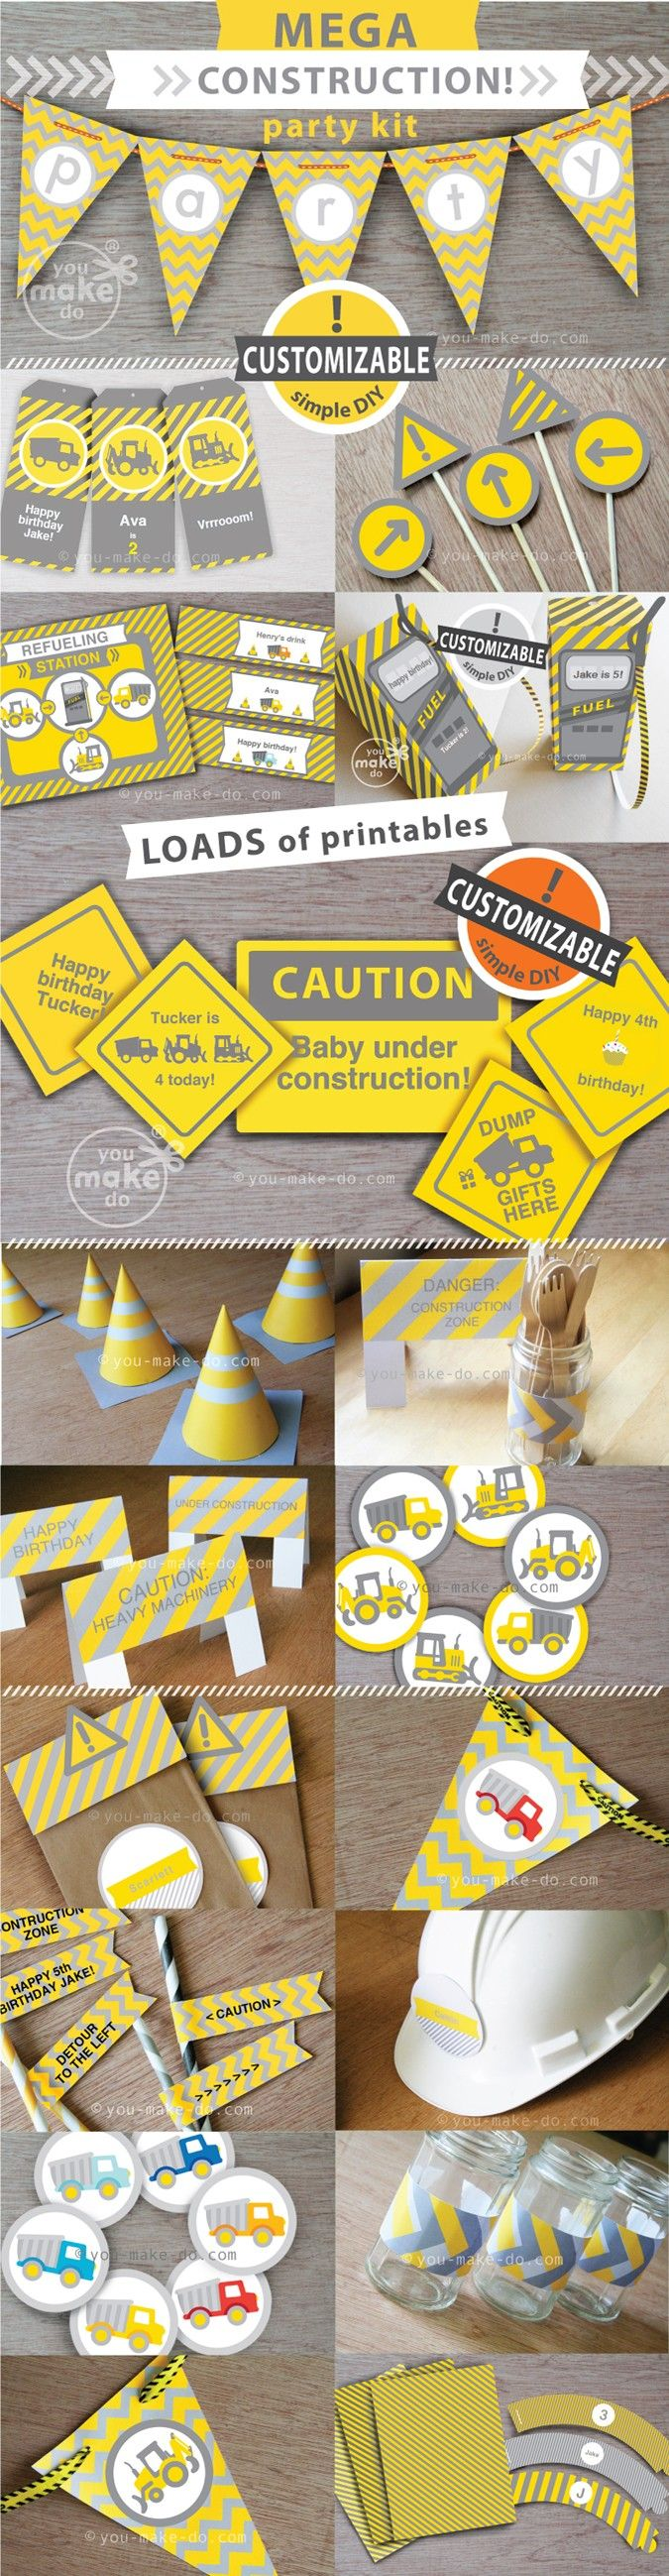 Construction Birthday Party Decorations Construction Party Printables To Make Your Own Construction Party